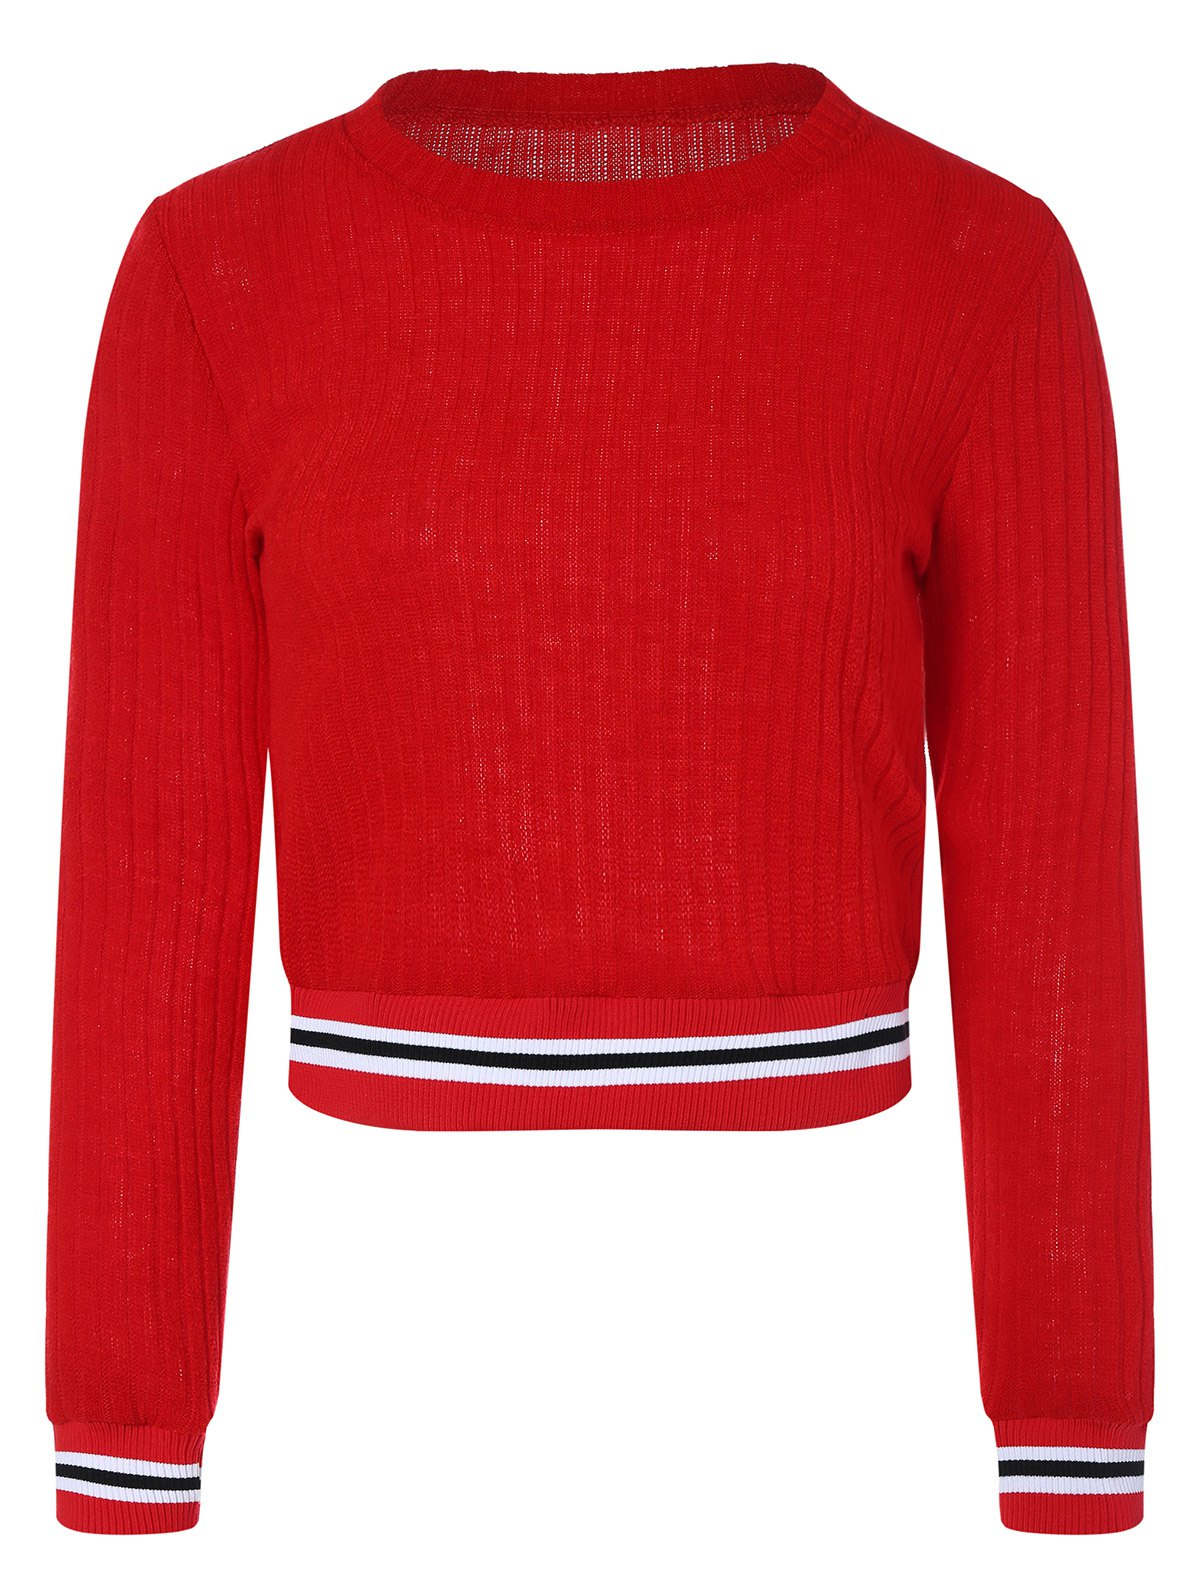 2018 Knitted Cropped Sweater RED XL In Sweaters & Cardigans Online ...